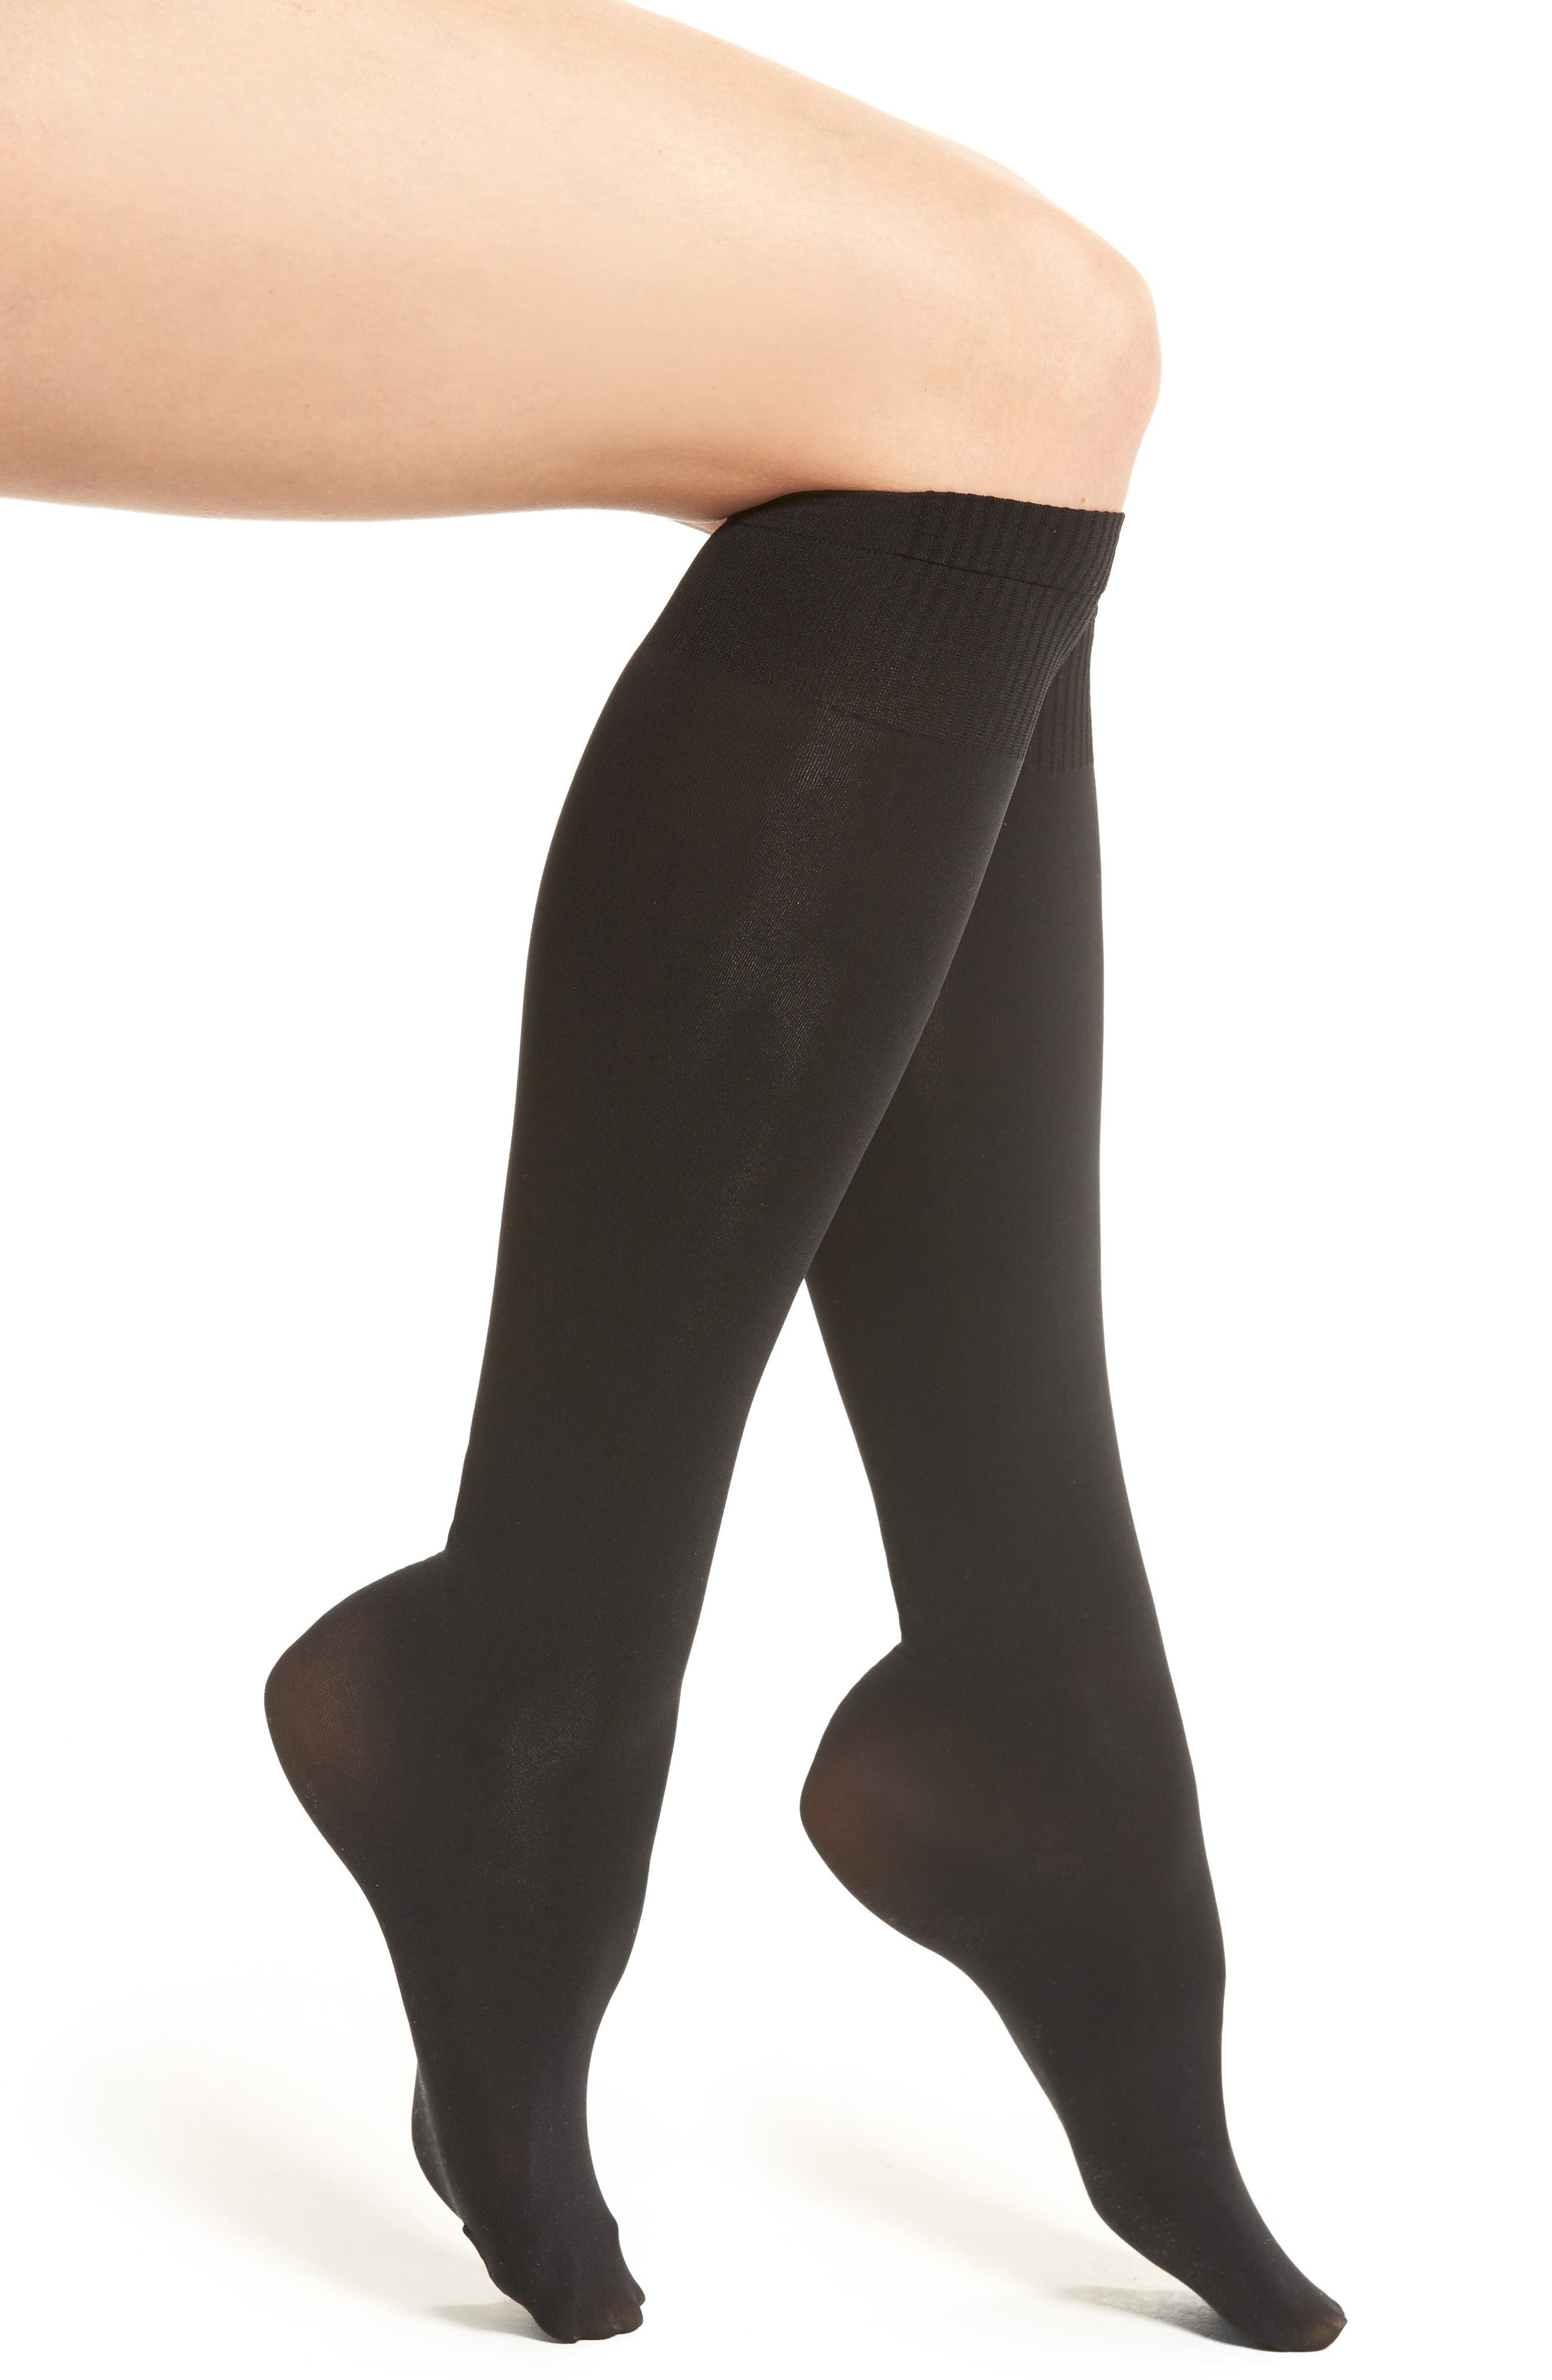 Alternate Image 1 Selected - DKNY Opaque Knee High Socks